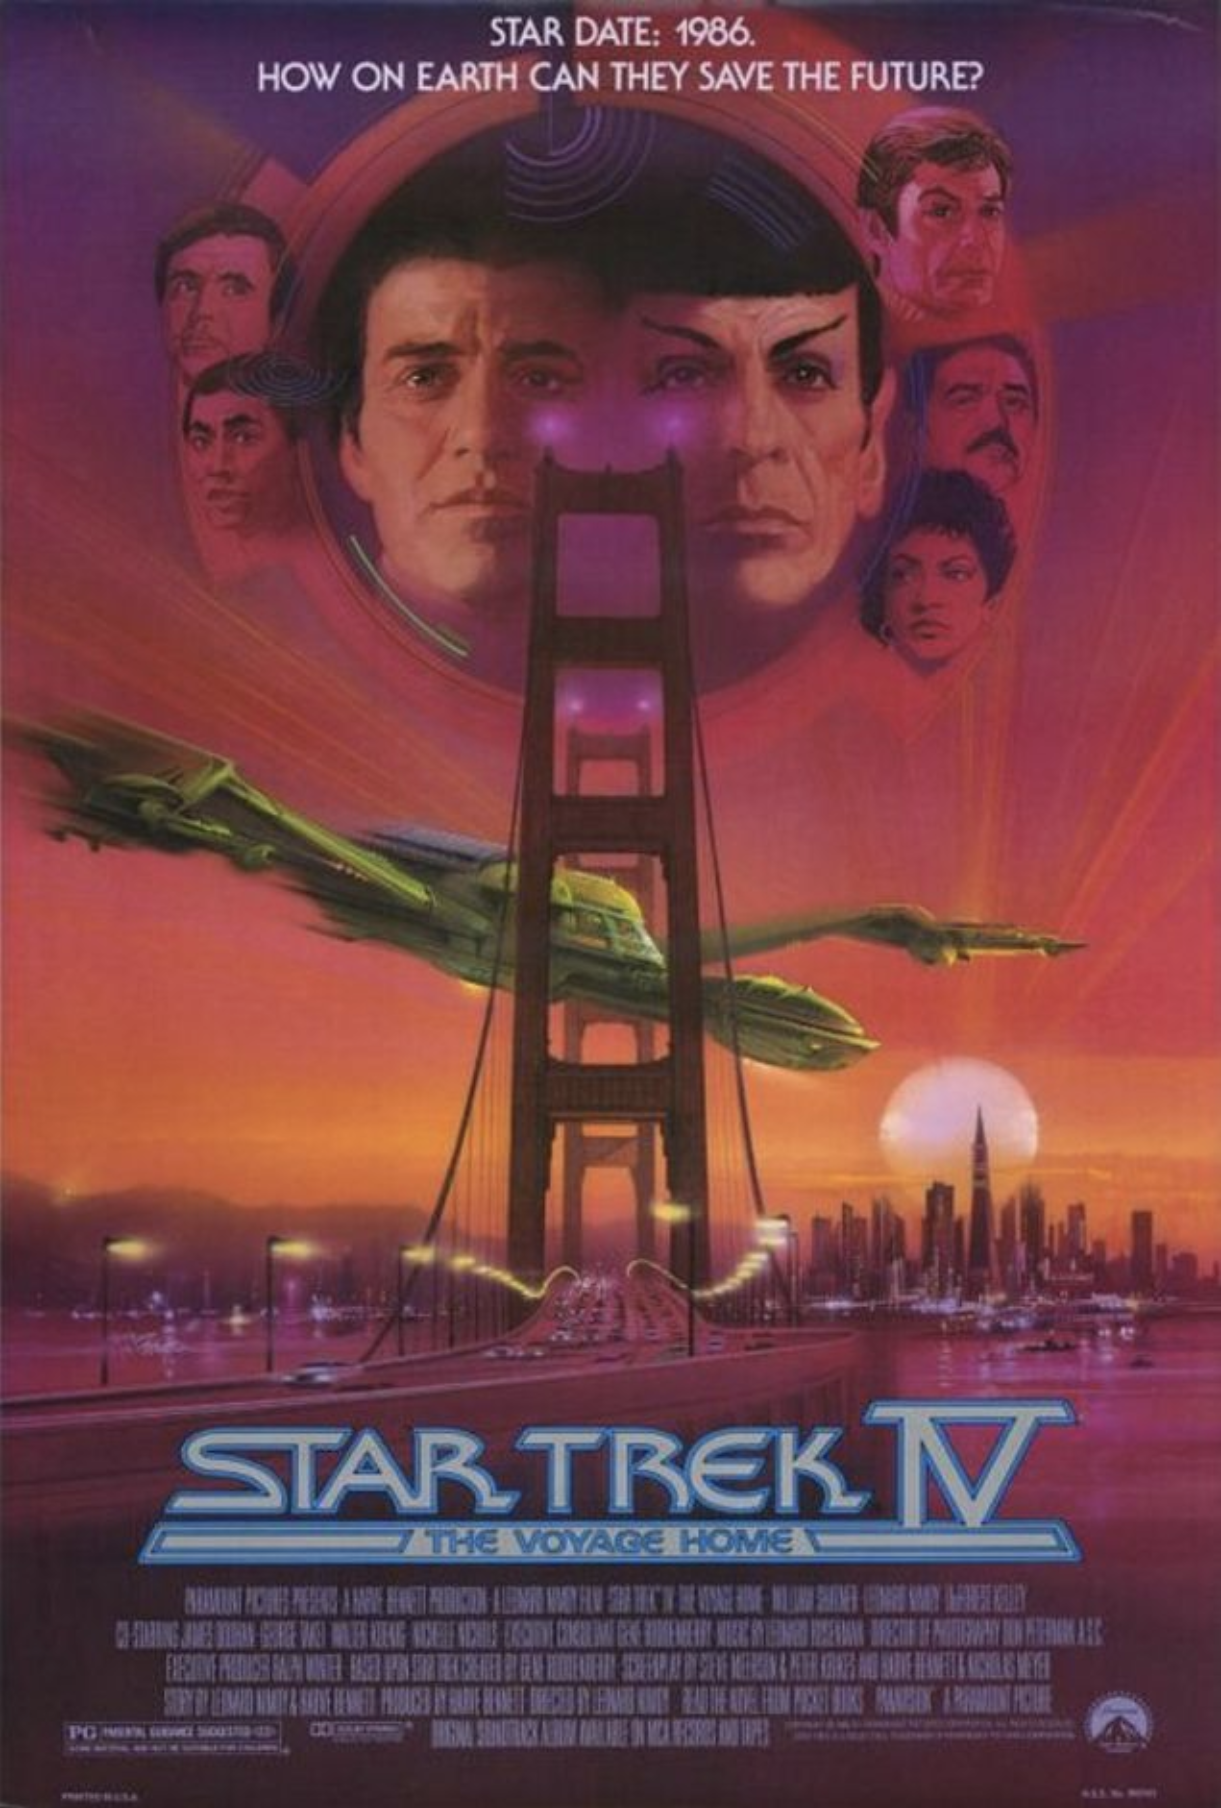 1986 Star Trek lV The Voyage Home writer